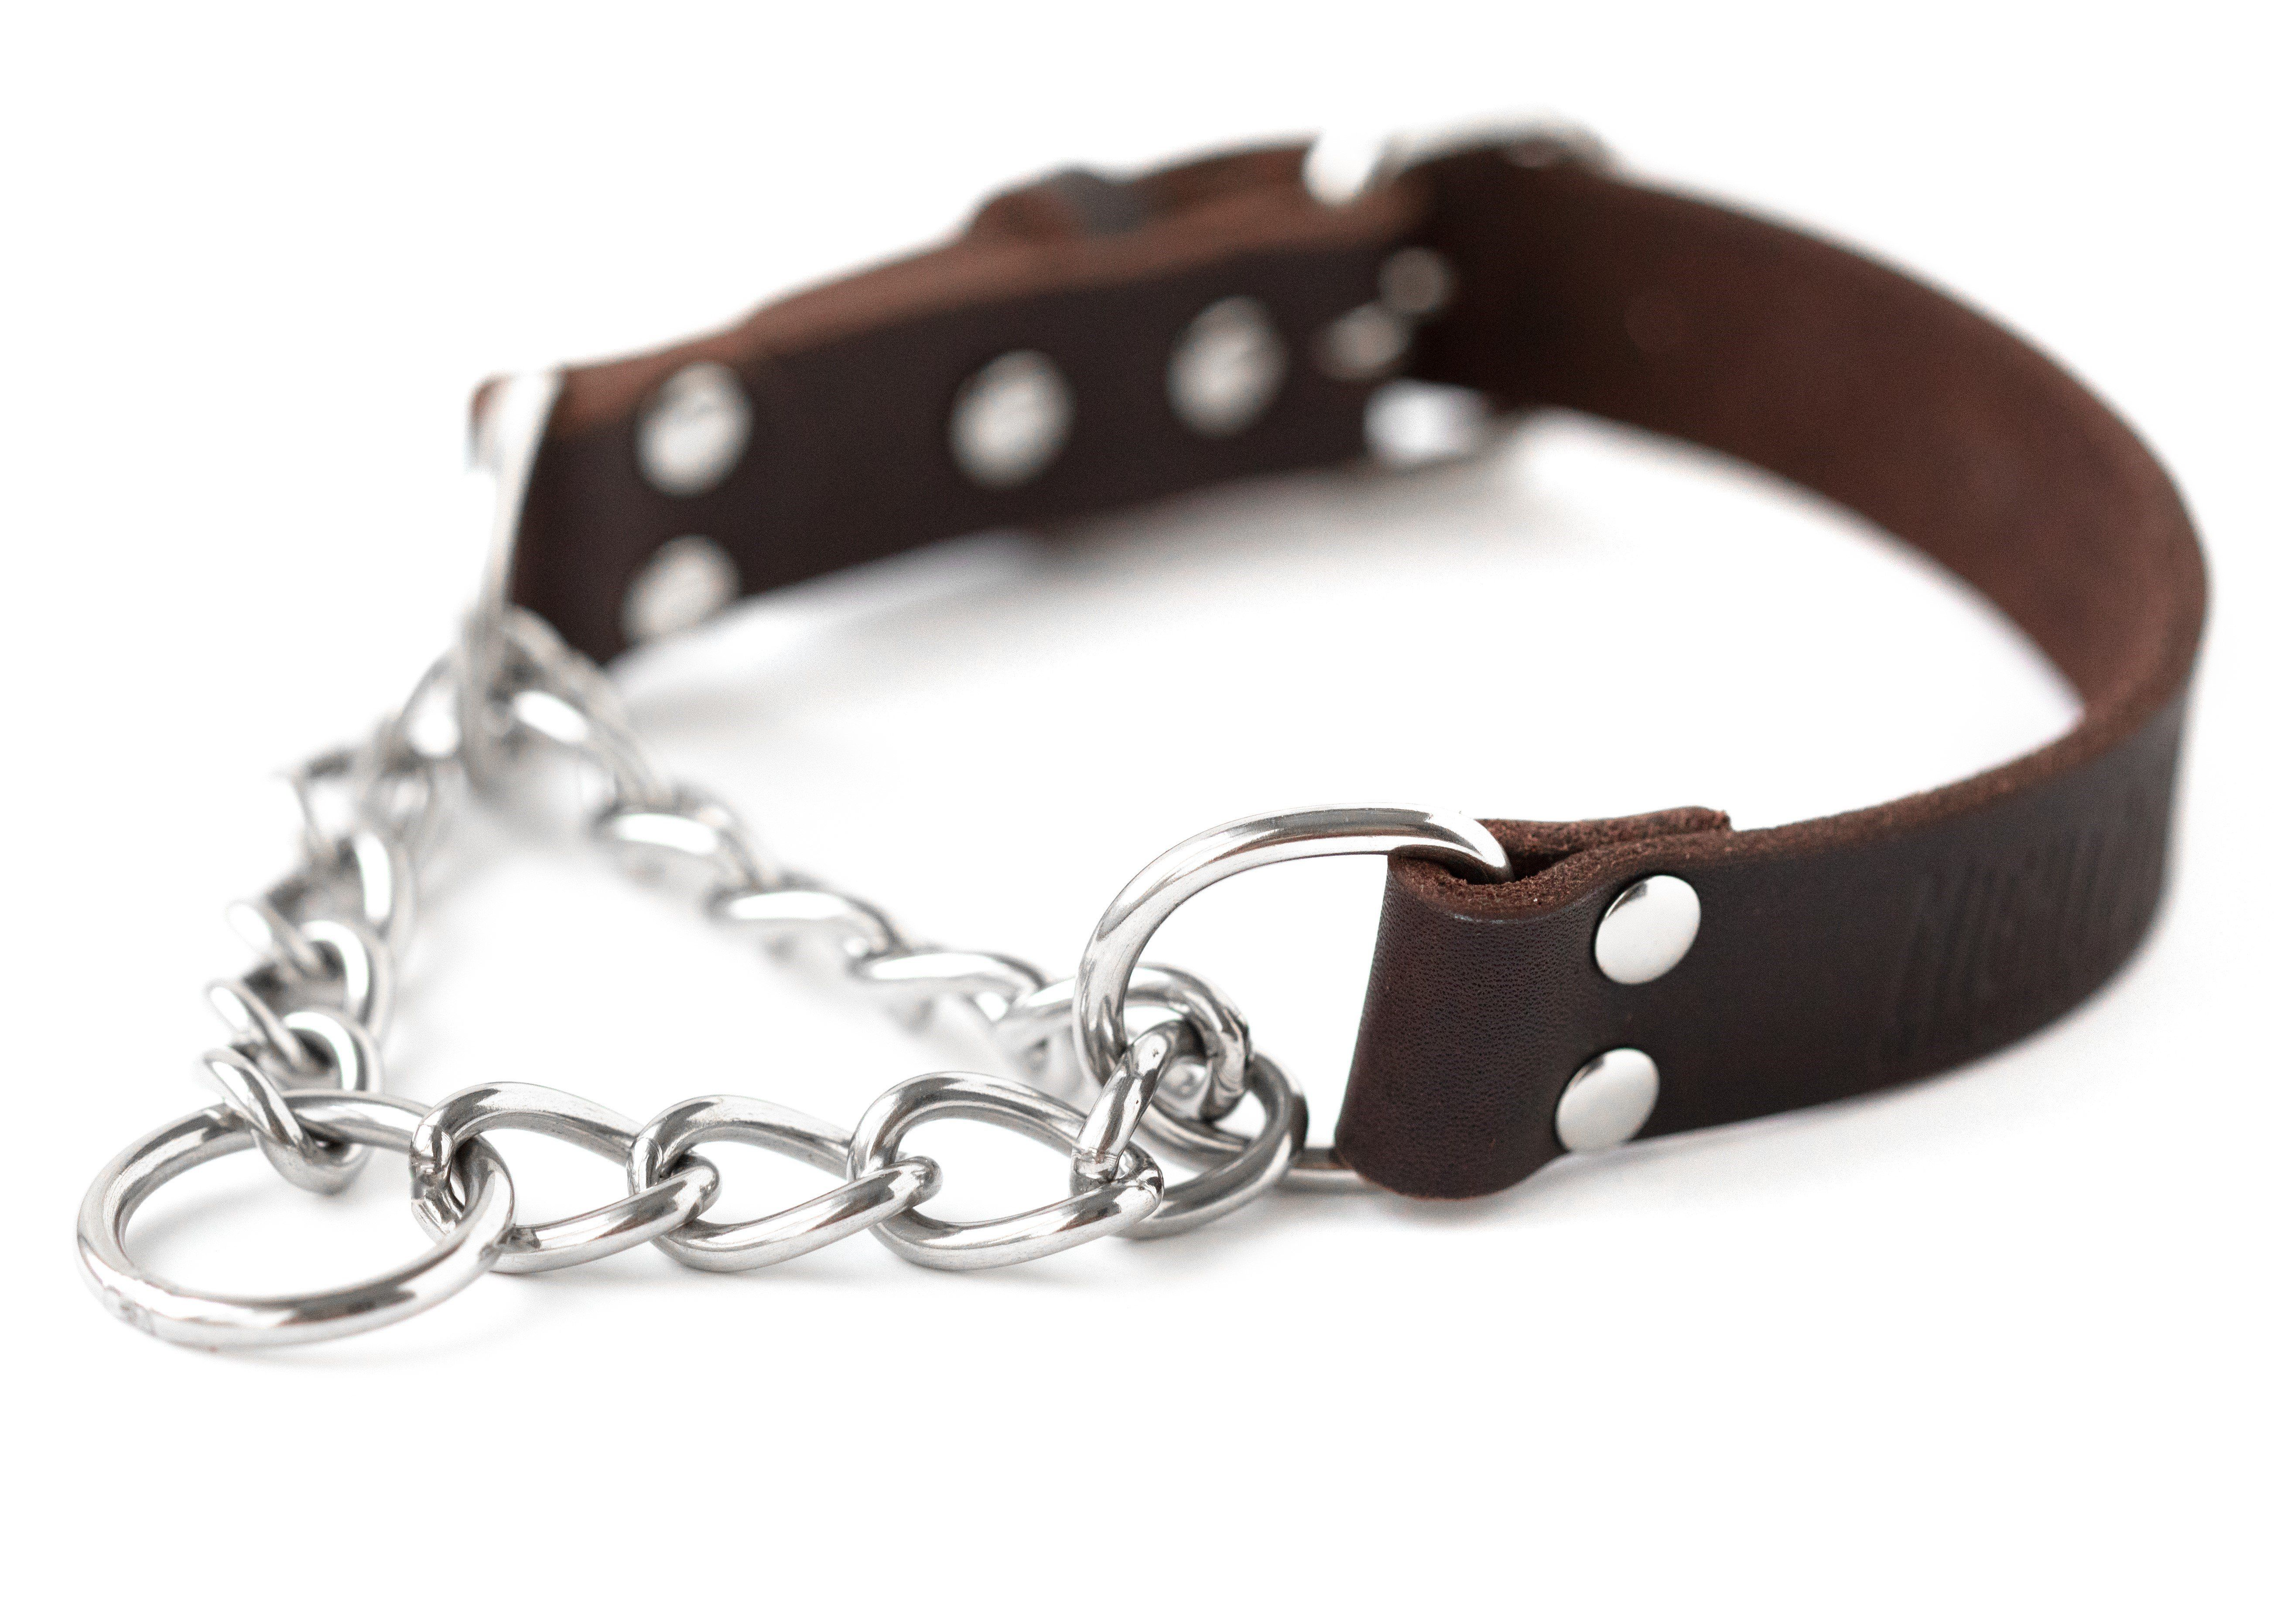 Leather Martingale Training Collar Training Collar Stainless